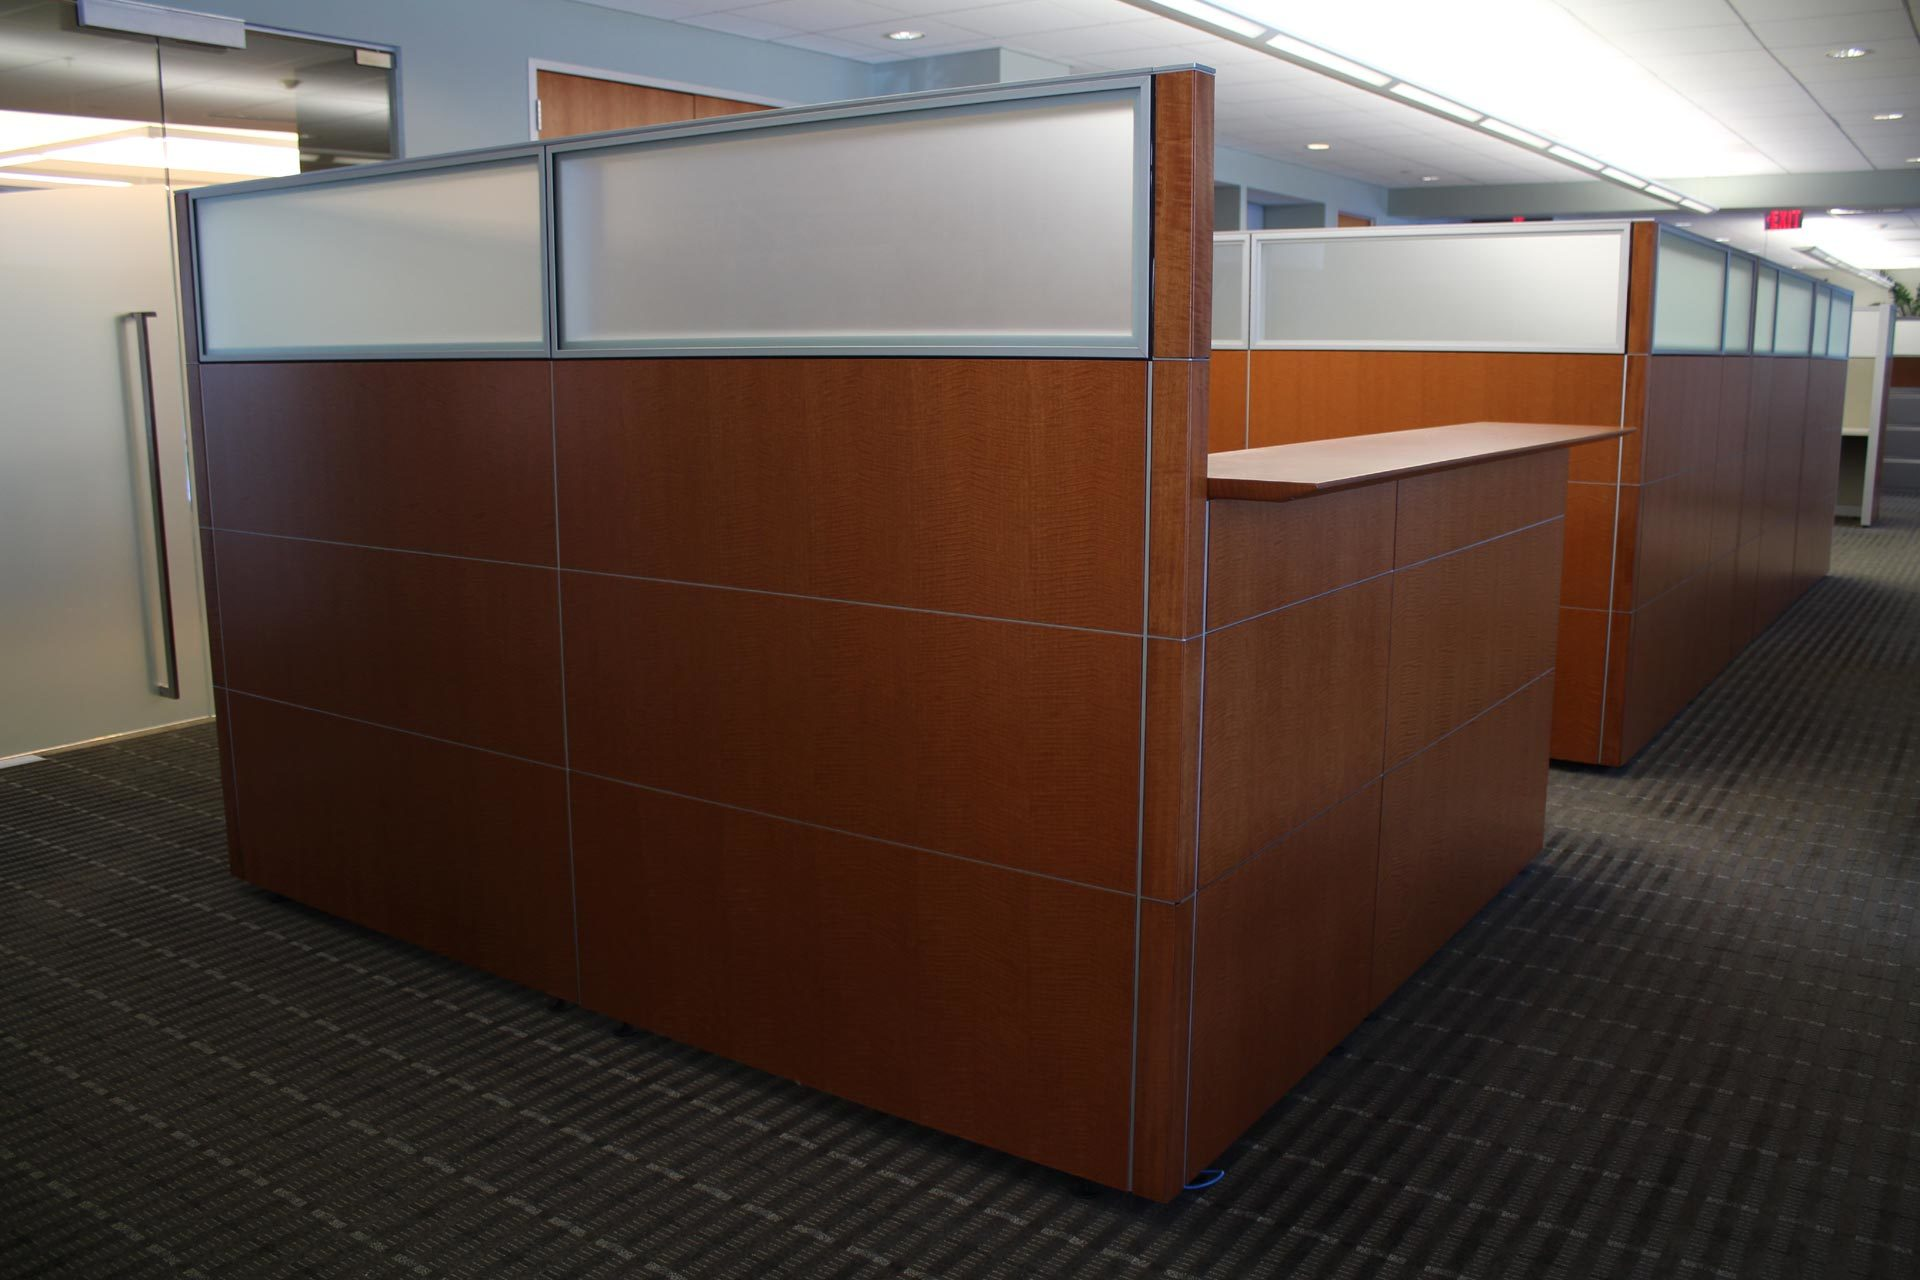 peartreeofficefurniture_peartreeofficefurniture_knoll-reff-reception-desk-2.jpg